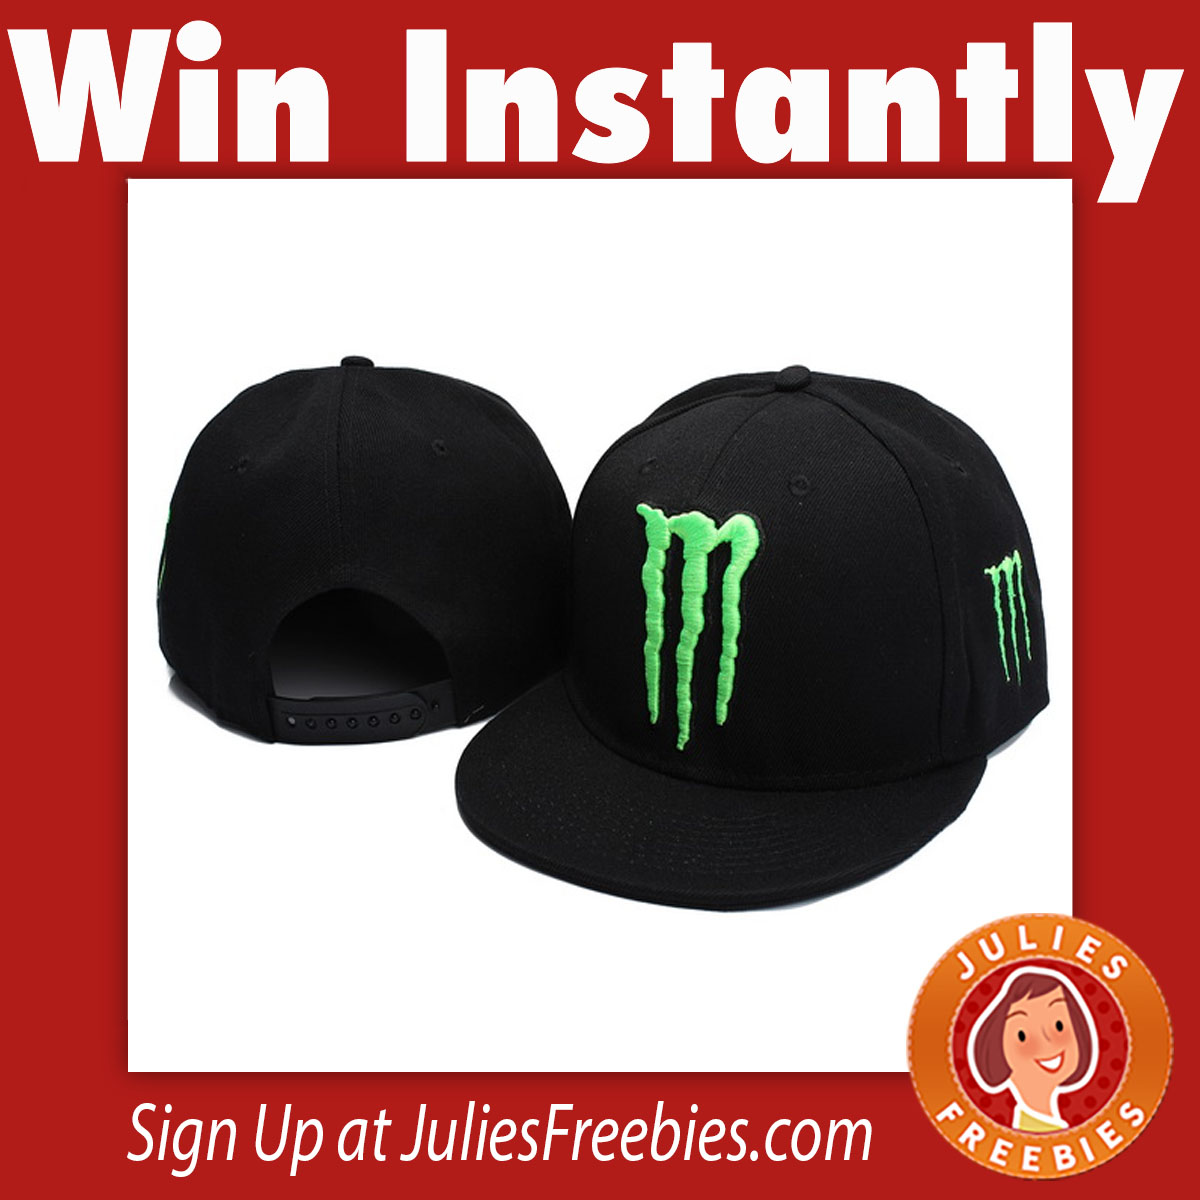 sweepstakes by mail monster energy instant win game and sweepstakes freebies 5390